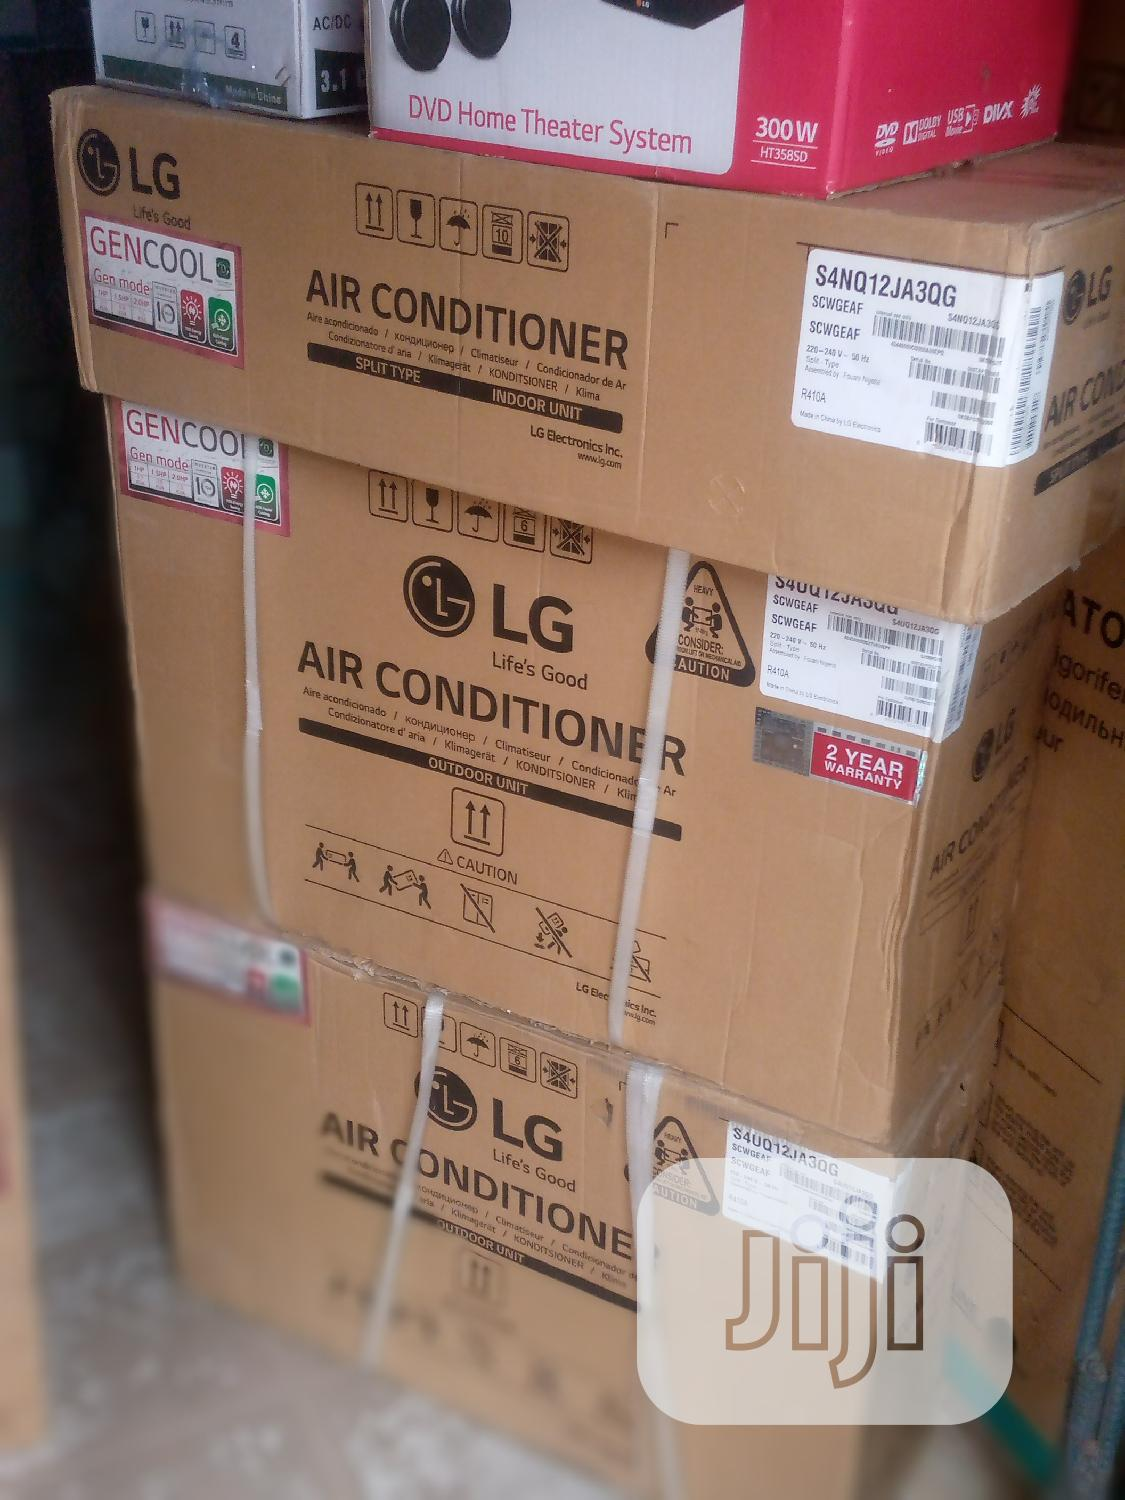 Original LG Air Conditioner 1.5hp Inverter Gen Cool